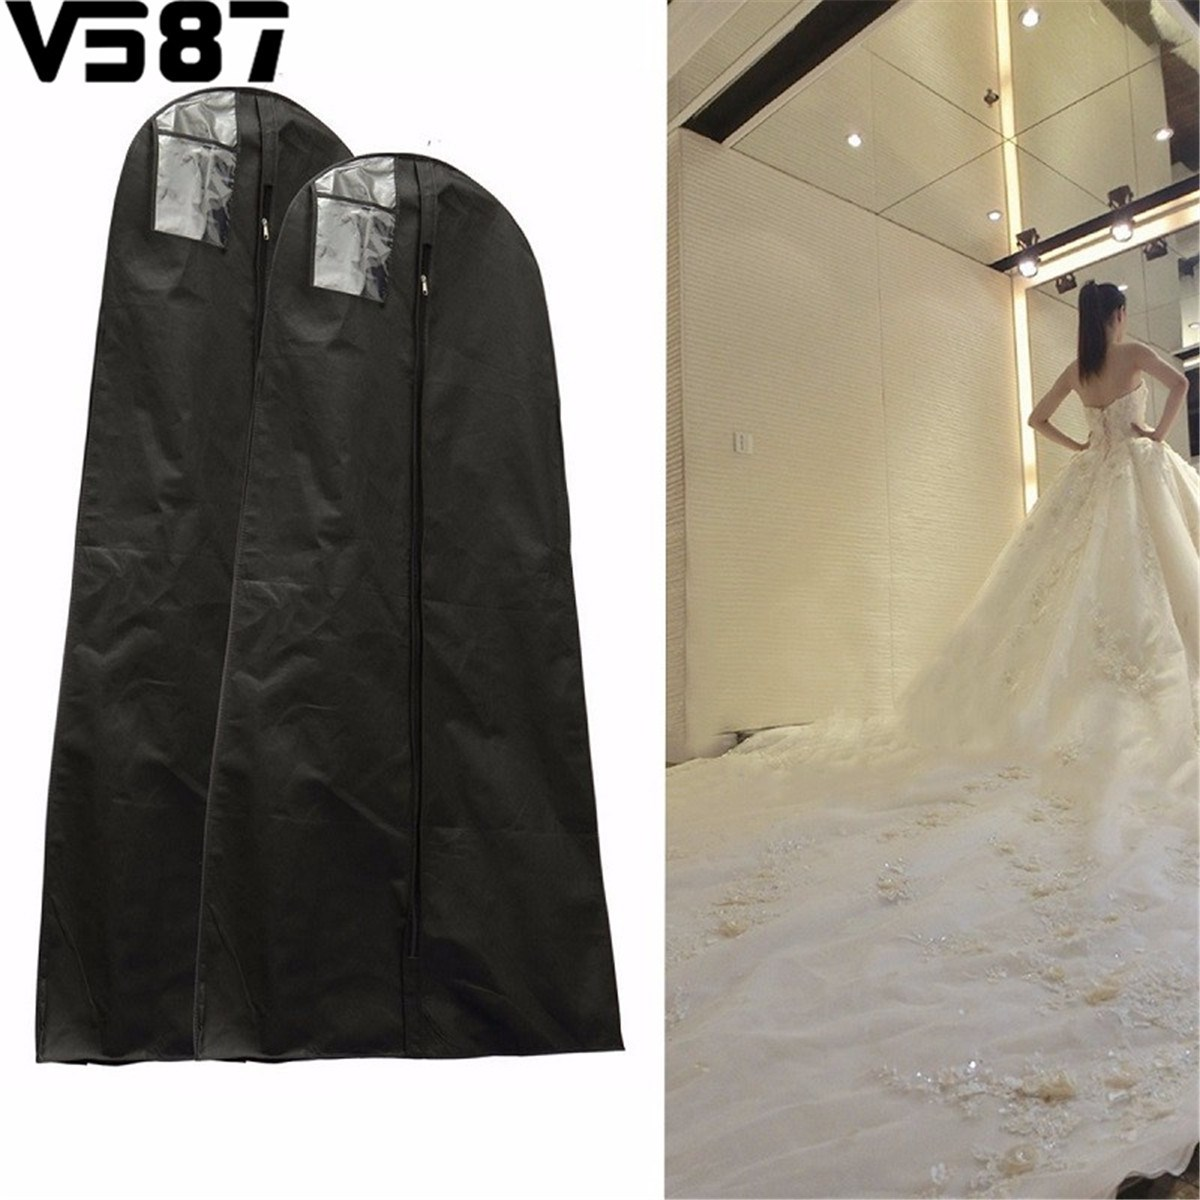 1.6/1.8M Waterproof Wedding Gown Bag Bridal Wedding Dresses Dustproof Protective Cover Home Closet Wardrobe Storage Accessories(China (Mainland))